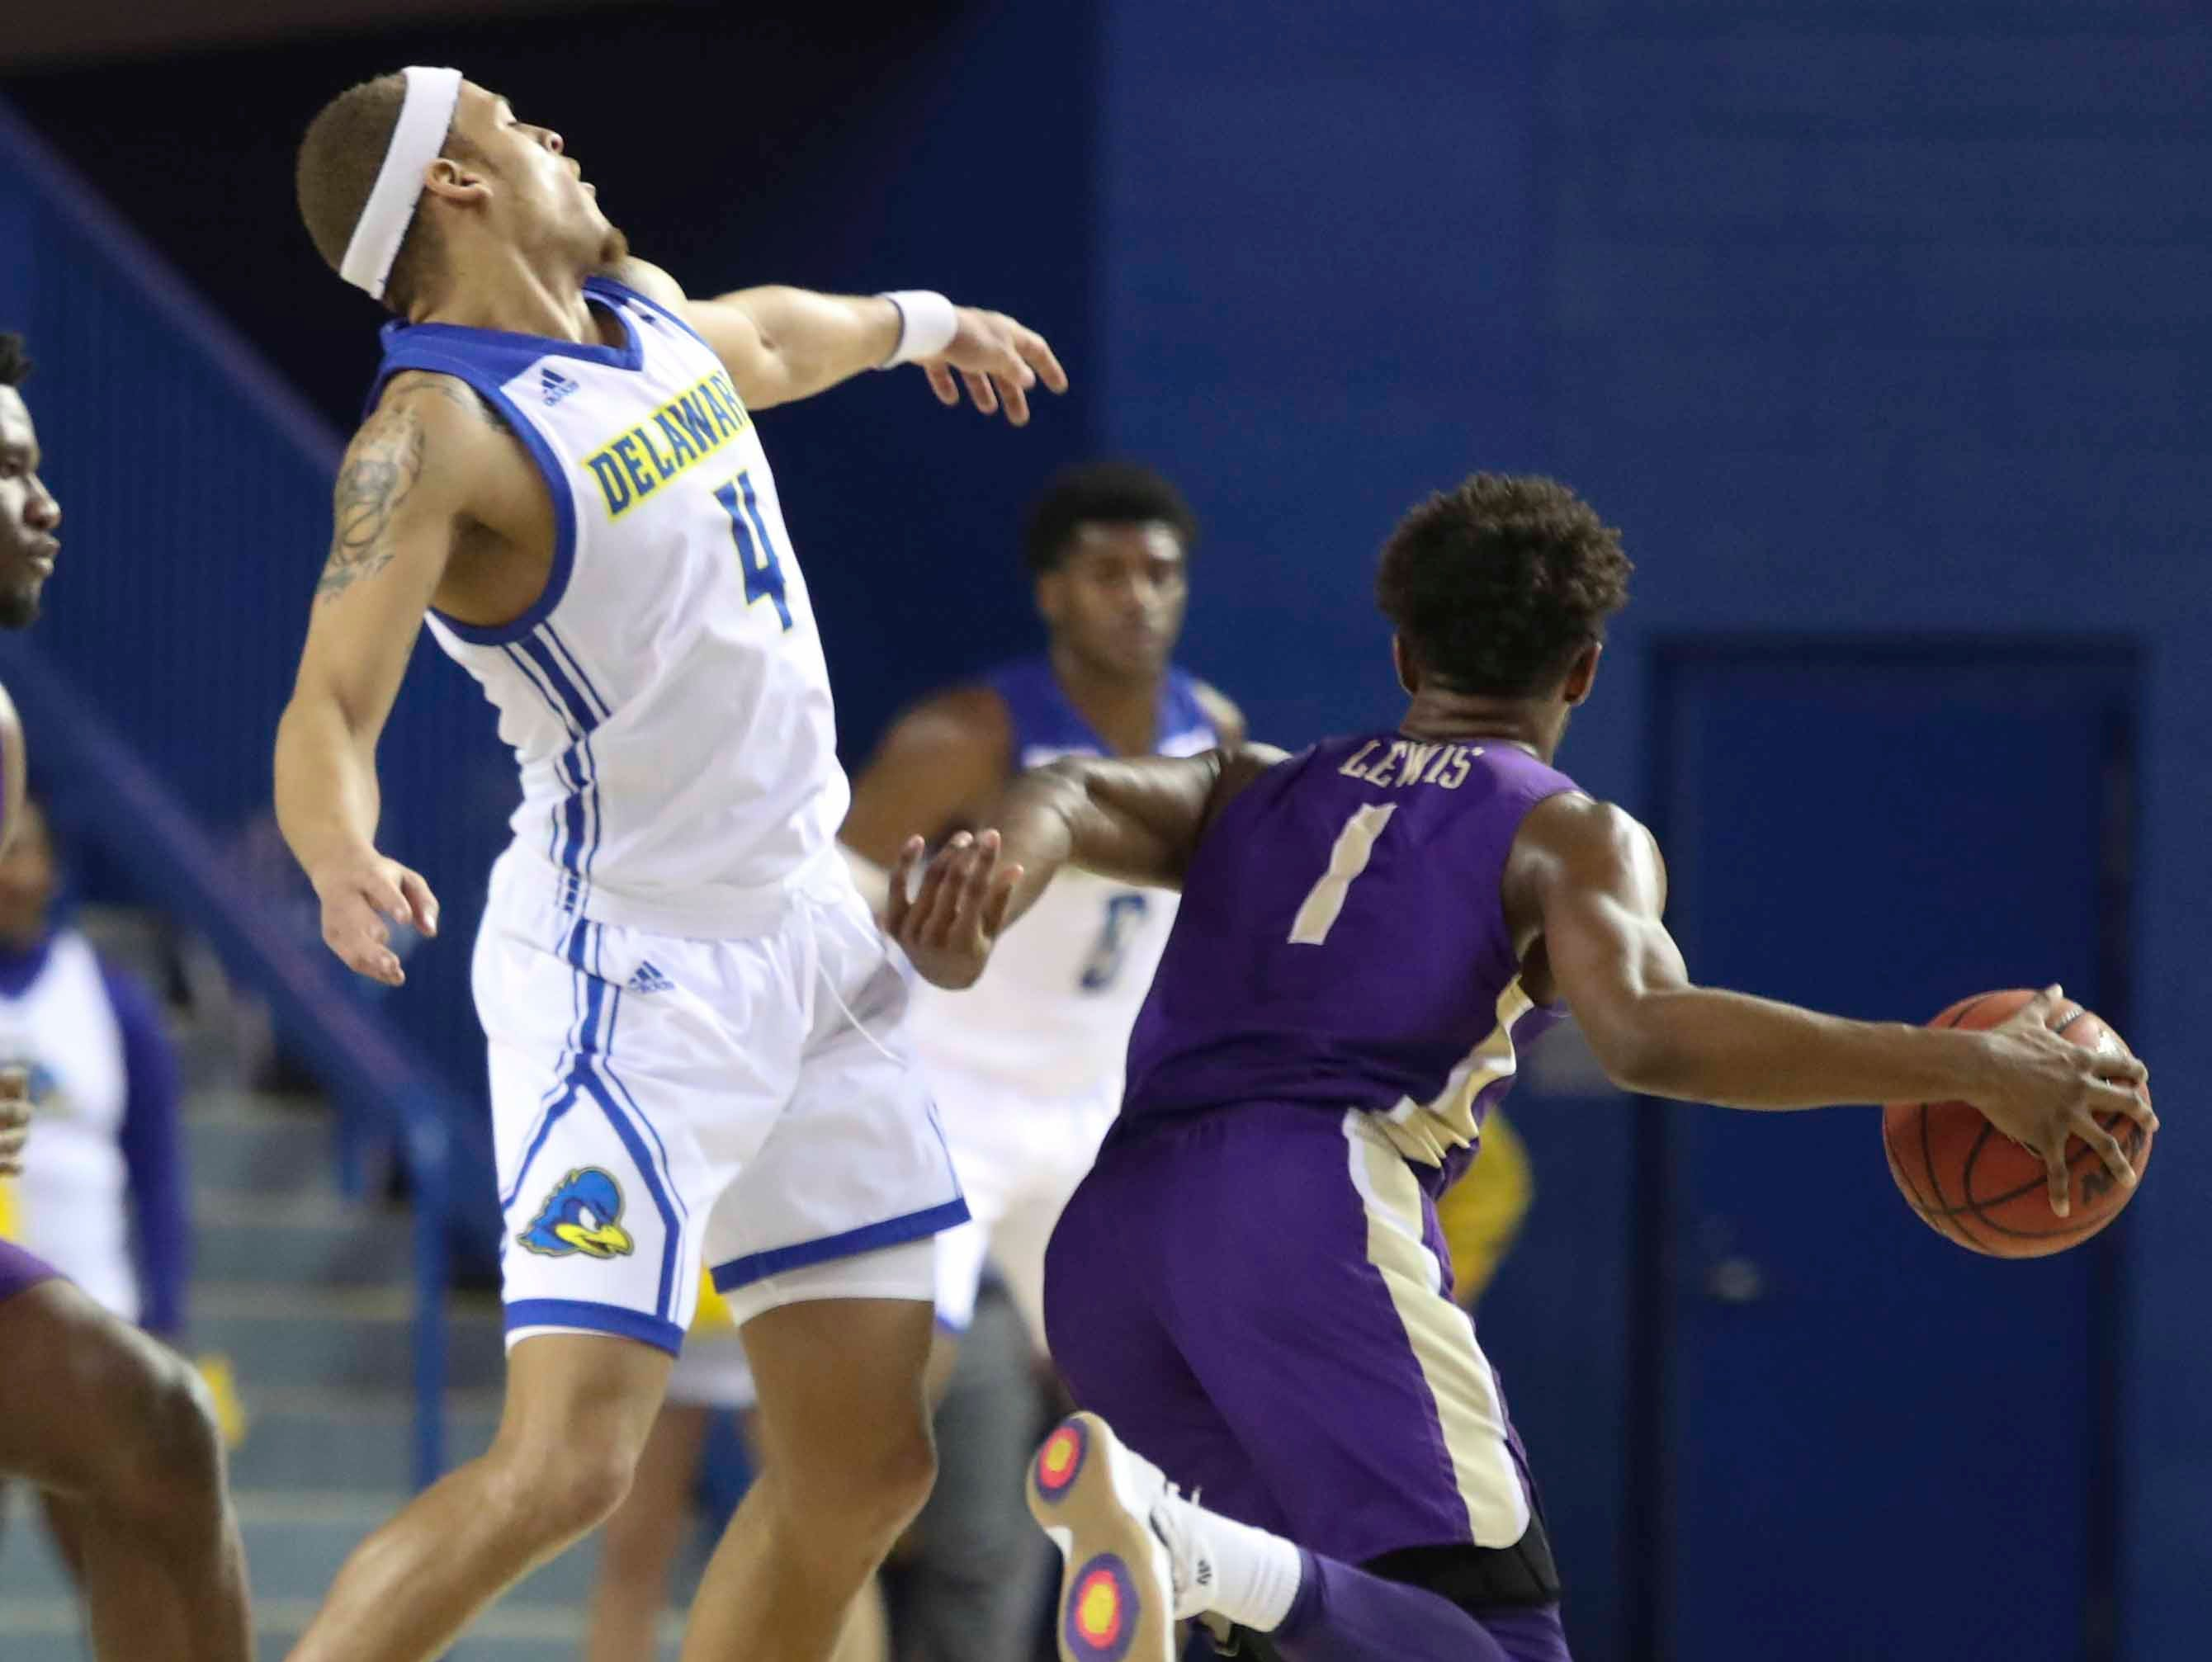 Delaware's Darian Bryant reacts after contact with James Madison's Matt Lewis in the first half at the Bob Carpenter Center Thursday.